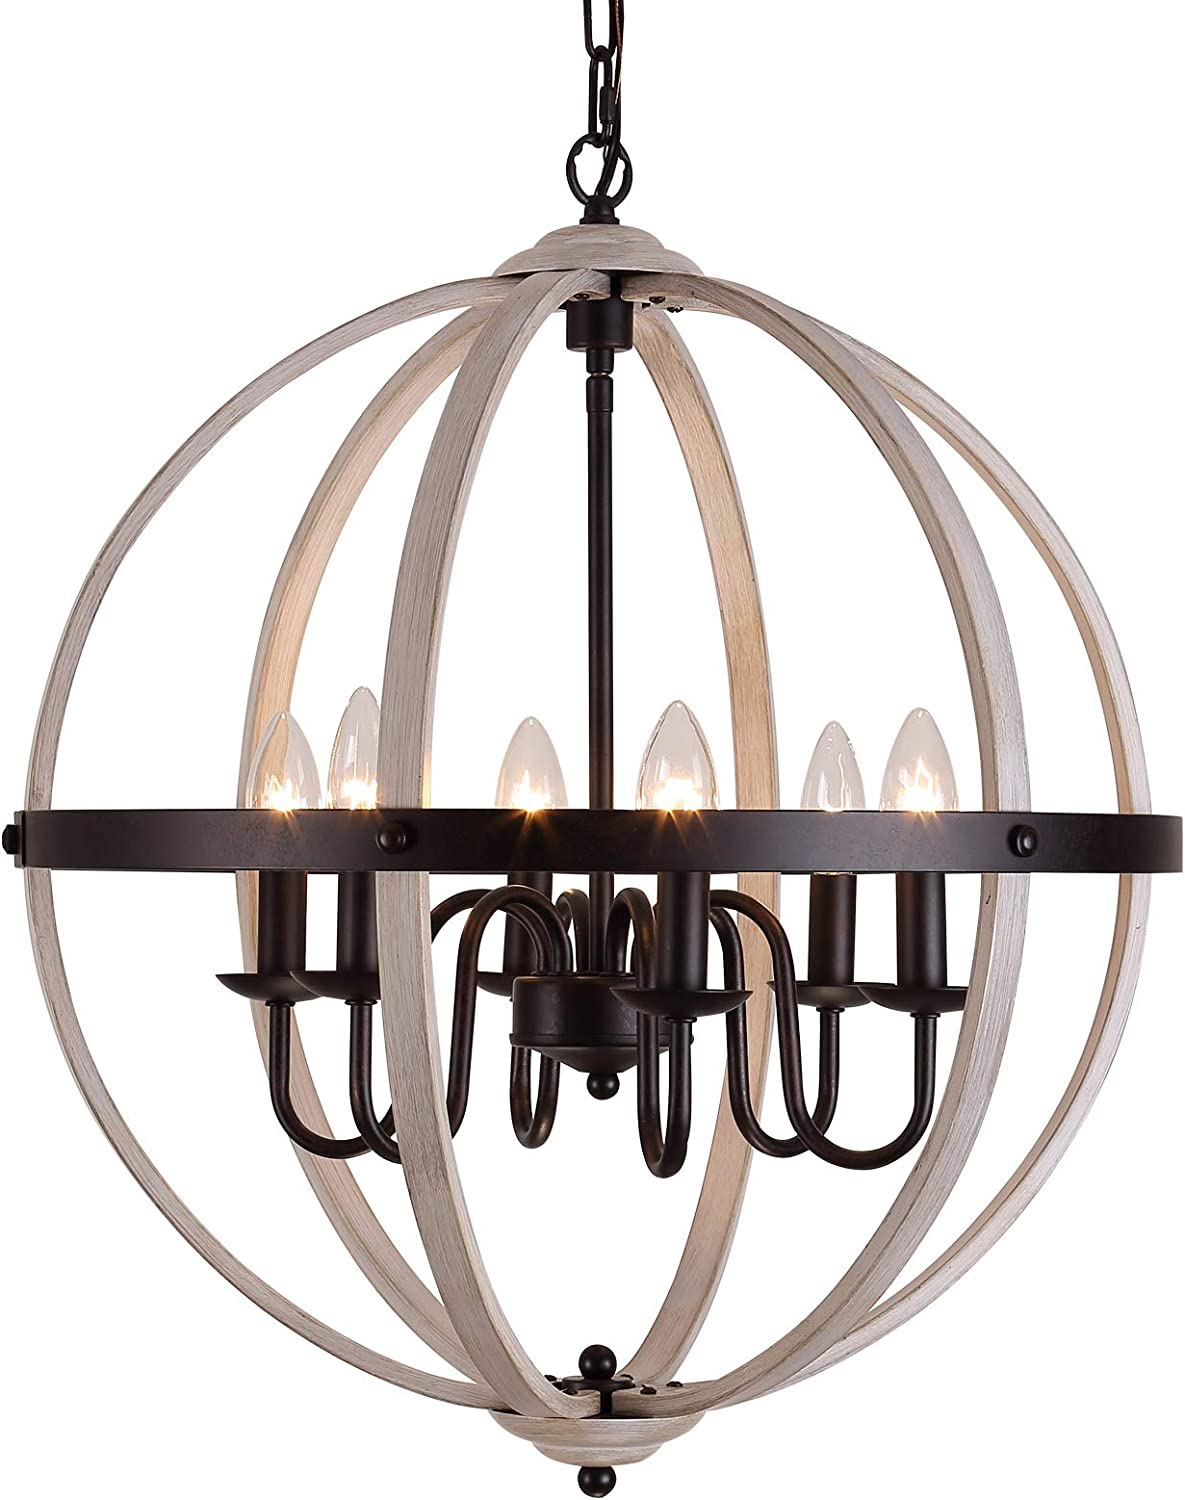 """Q&S Farmhouse Chandelier Rustic Chandeliers Global Vintage Pendant Ceiling Light Fixtures for Kitchen Dining Rooms Entryways,ORB and Oak Finish,6 Lights E12 W20.5""""H 97"""""""